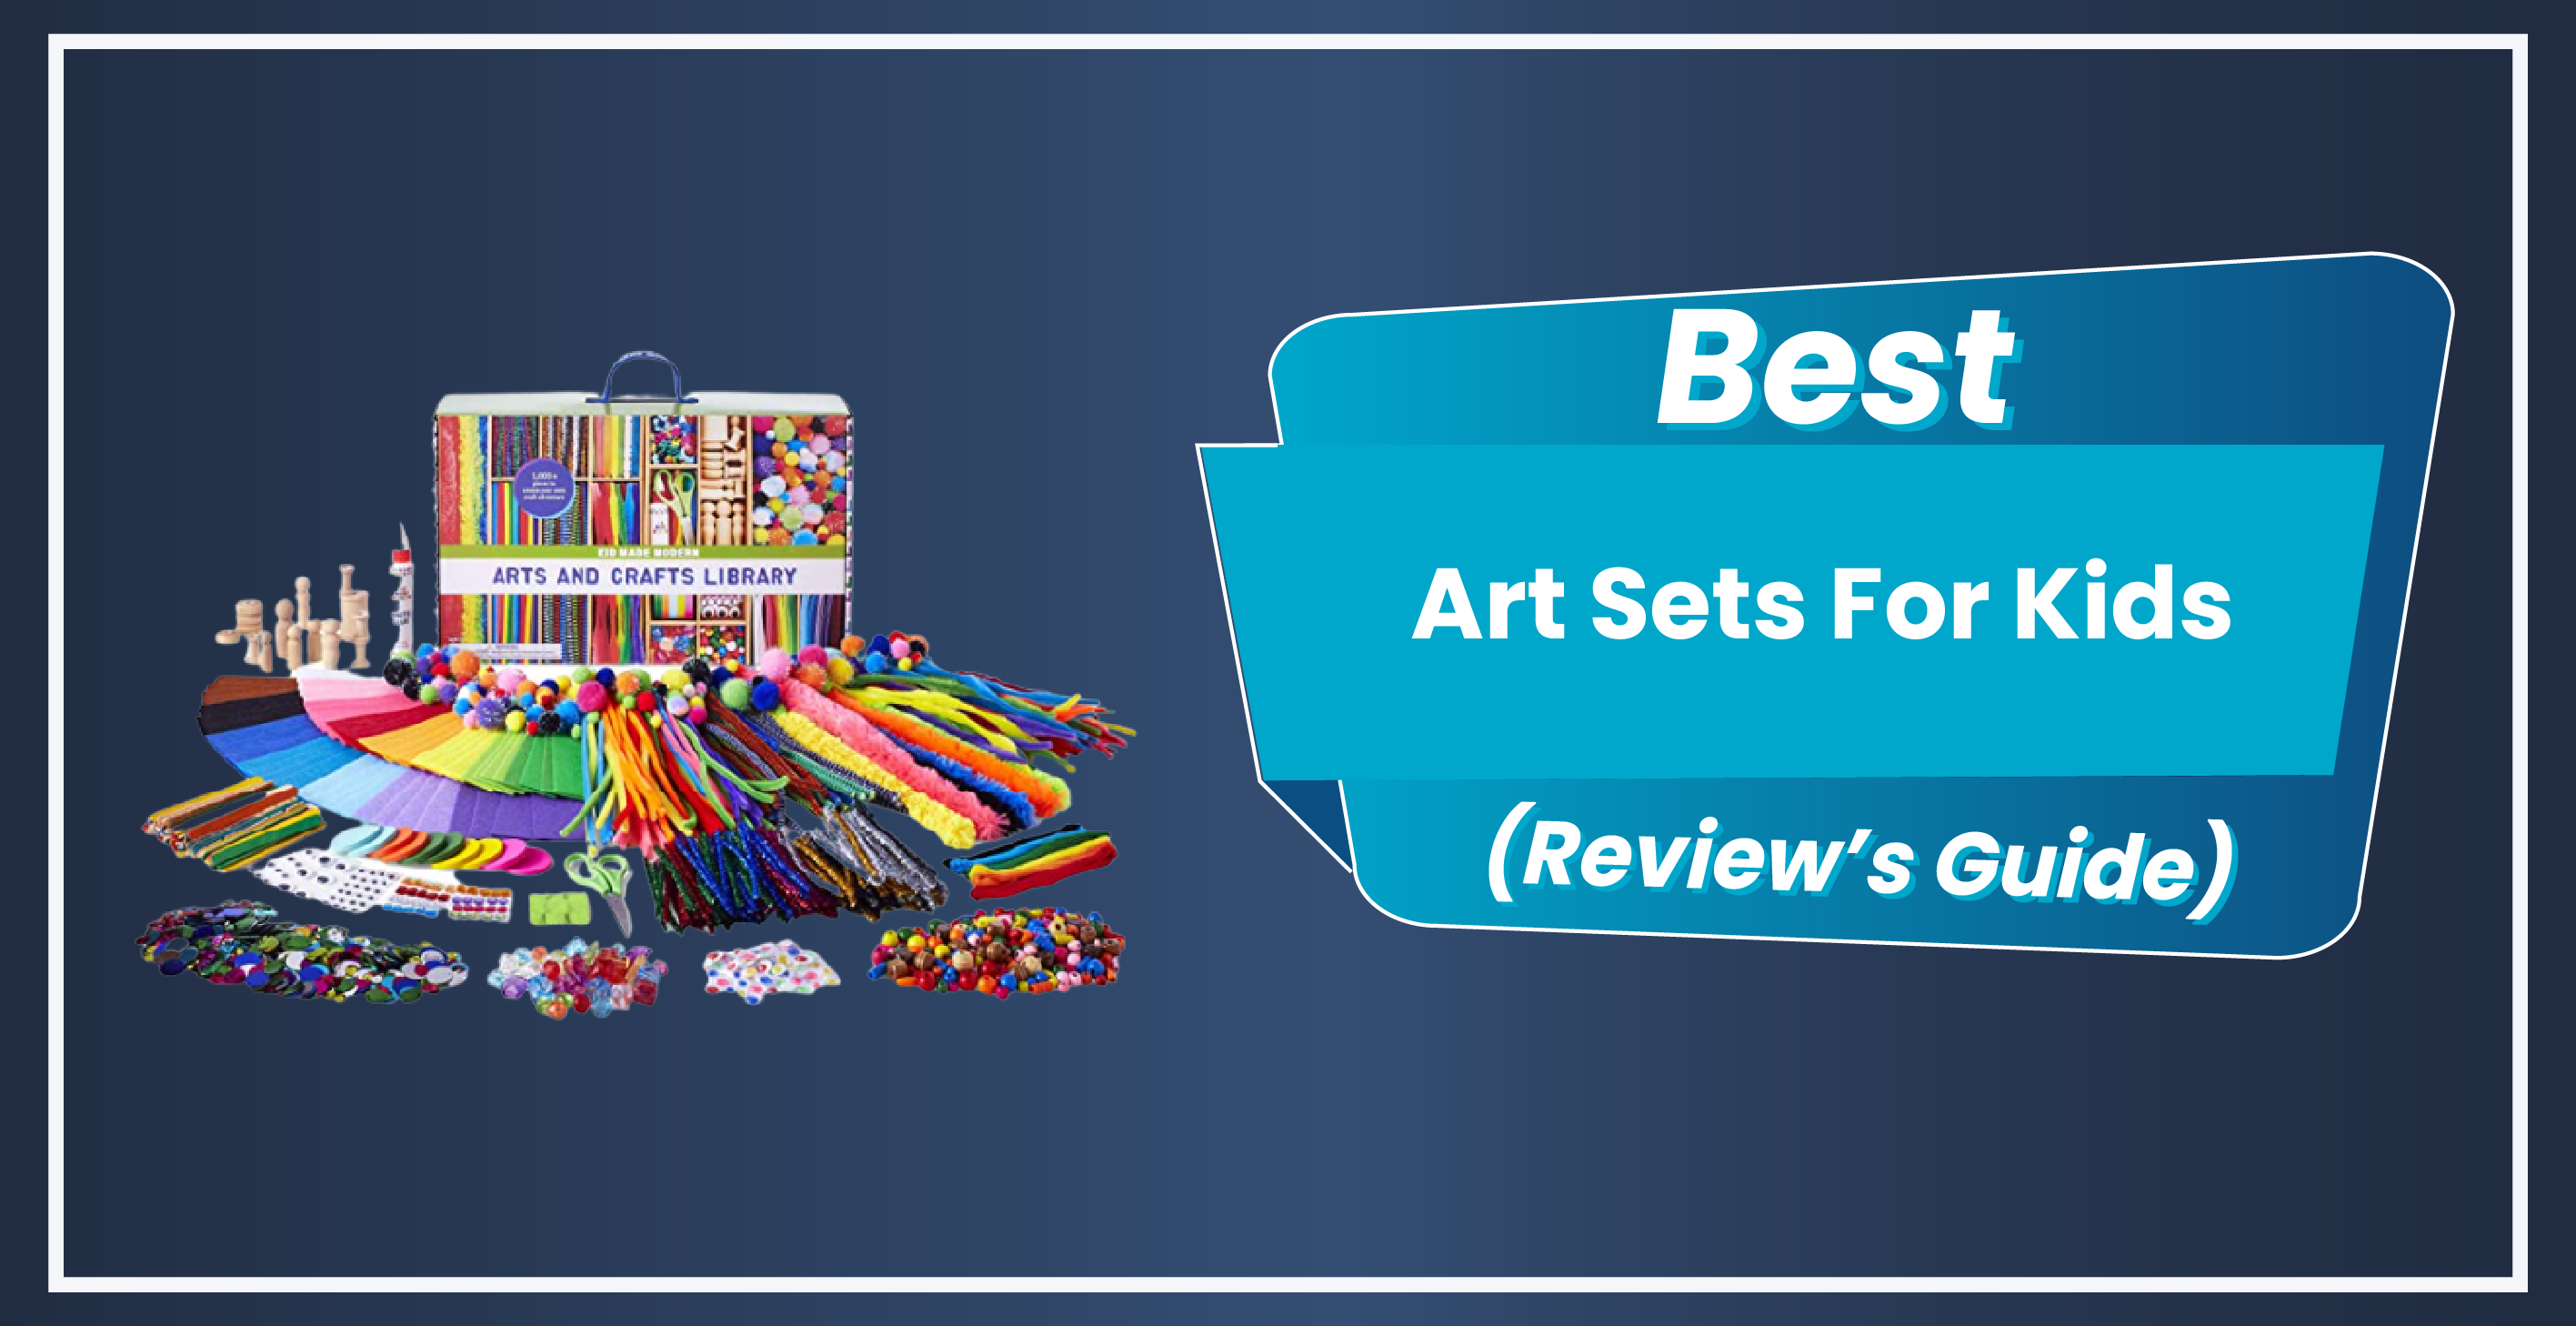 10 Best Art Sets For Kids